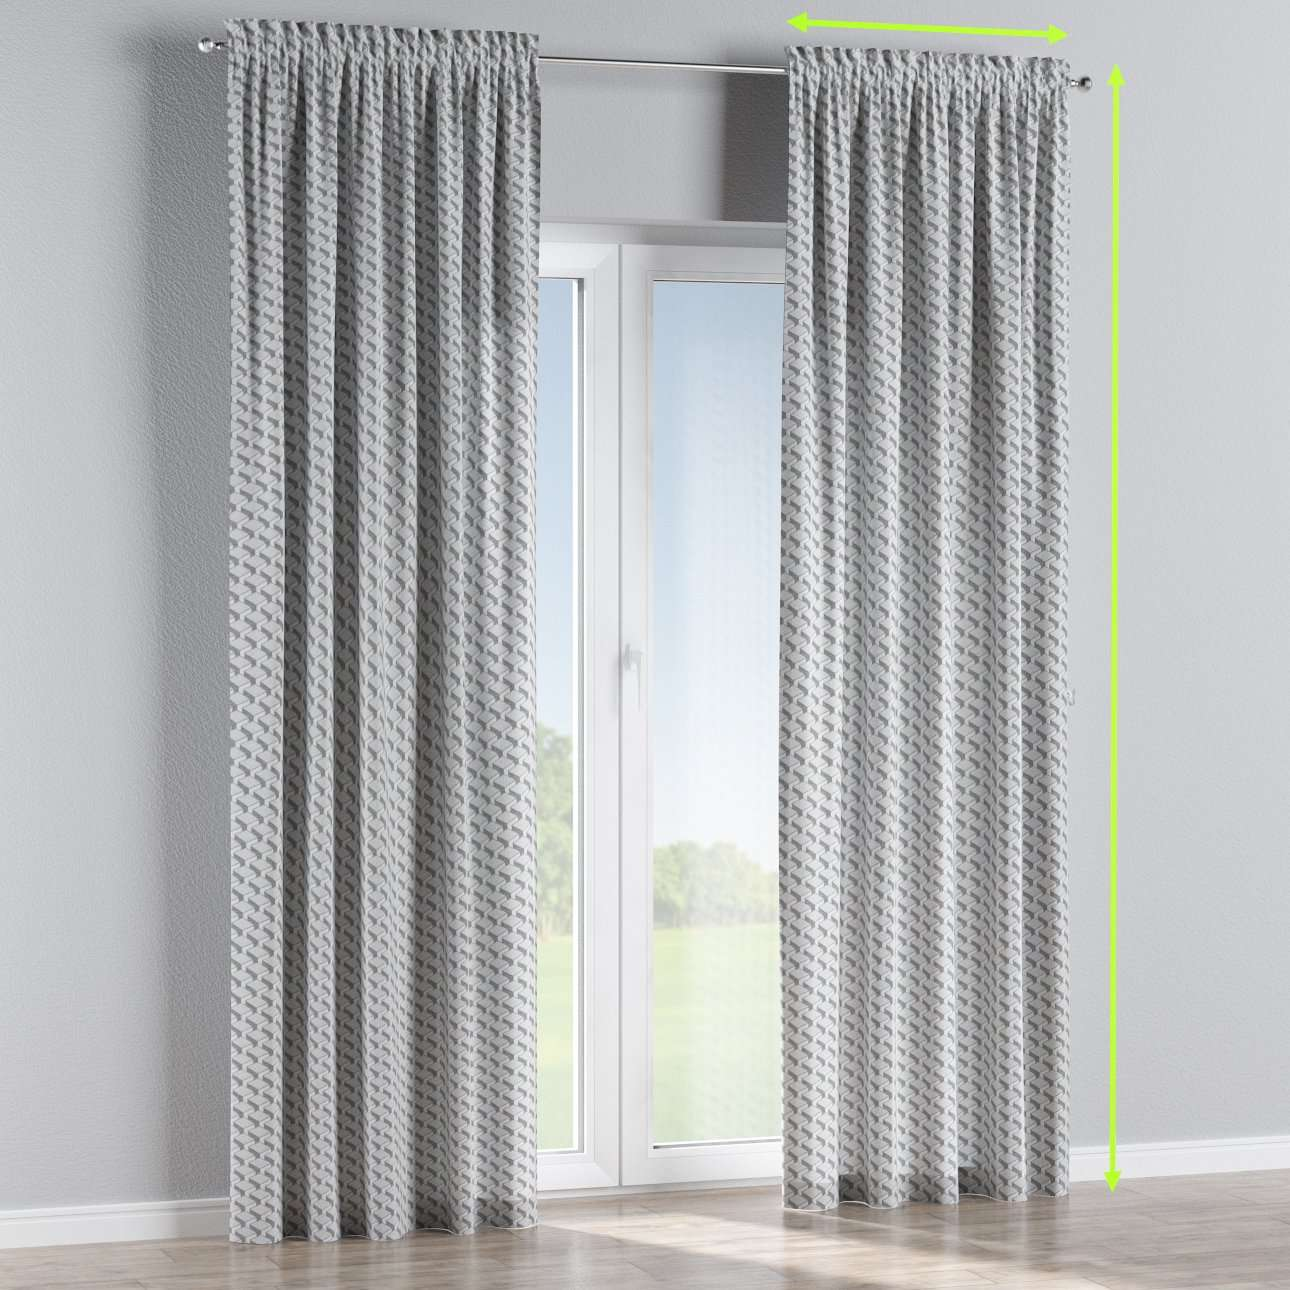 Slot and frill lined curtains in collection Rustica, fabric: 138-18